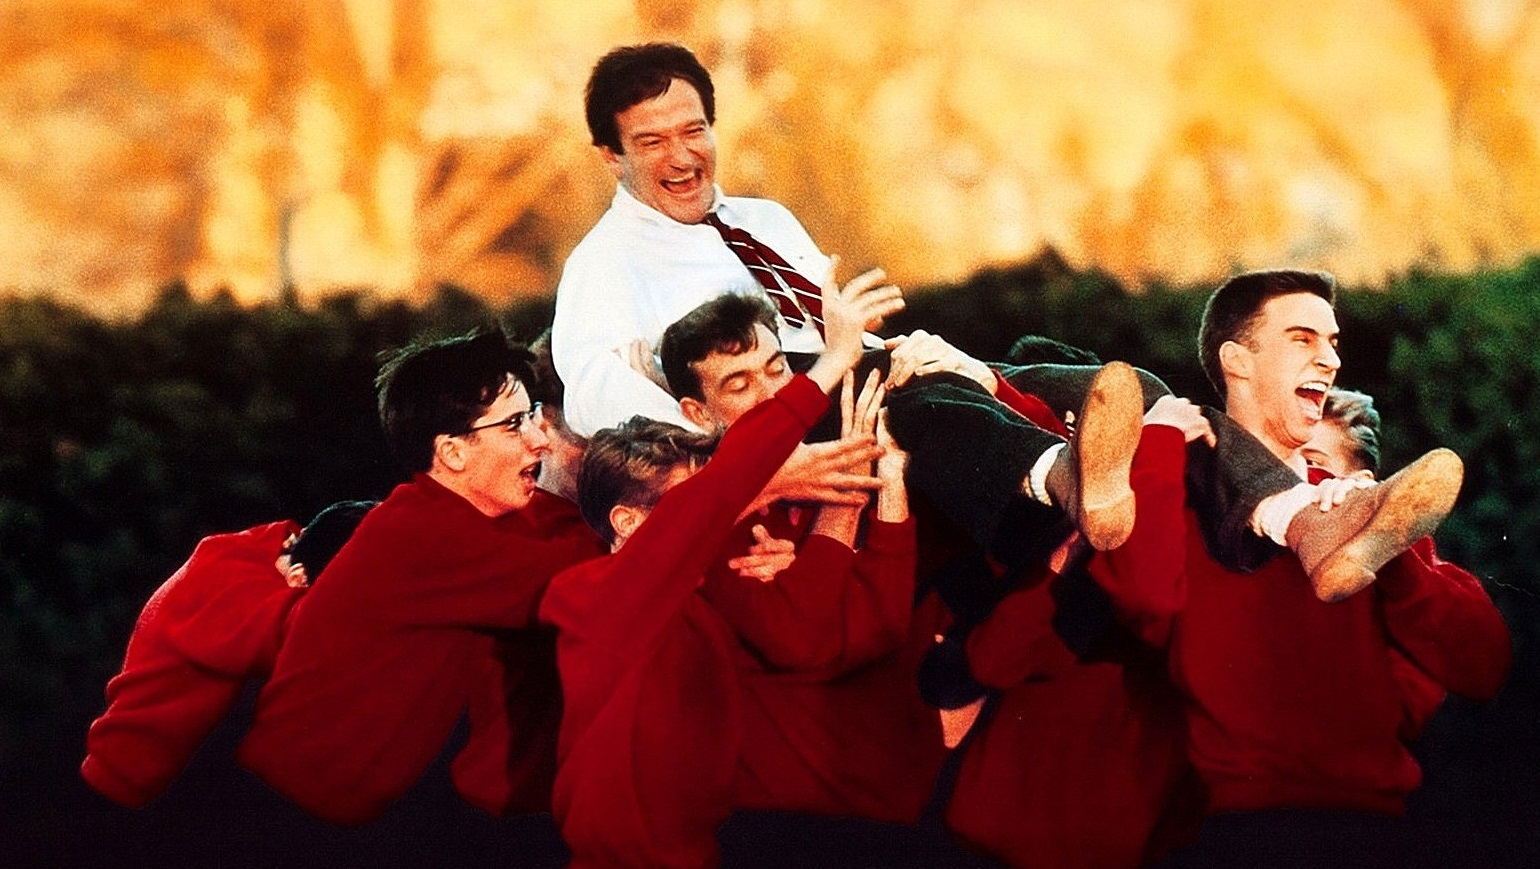 a comparison and contrast of dead poets society and day of the last rock fight Published: mon, 5 dec 2016 for this leadership report, we have chosen the movie « dead poets society » this movie was awarded for the best scenario in 1989 and was a great international success.